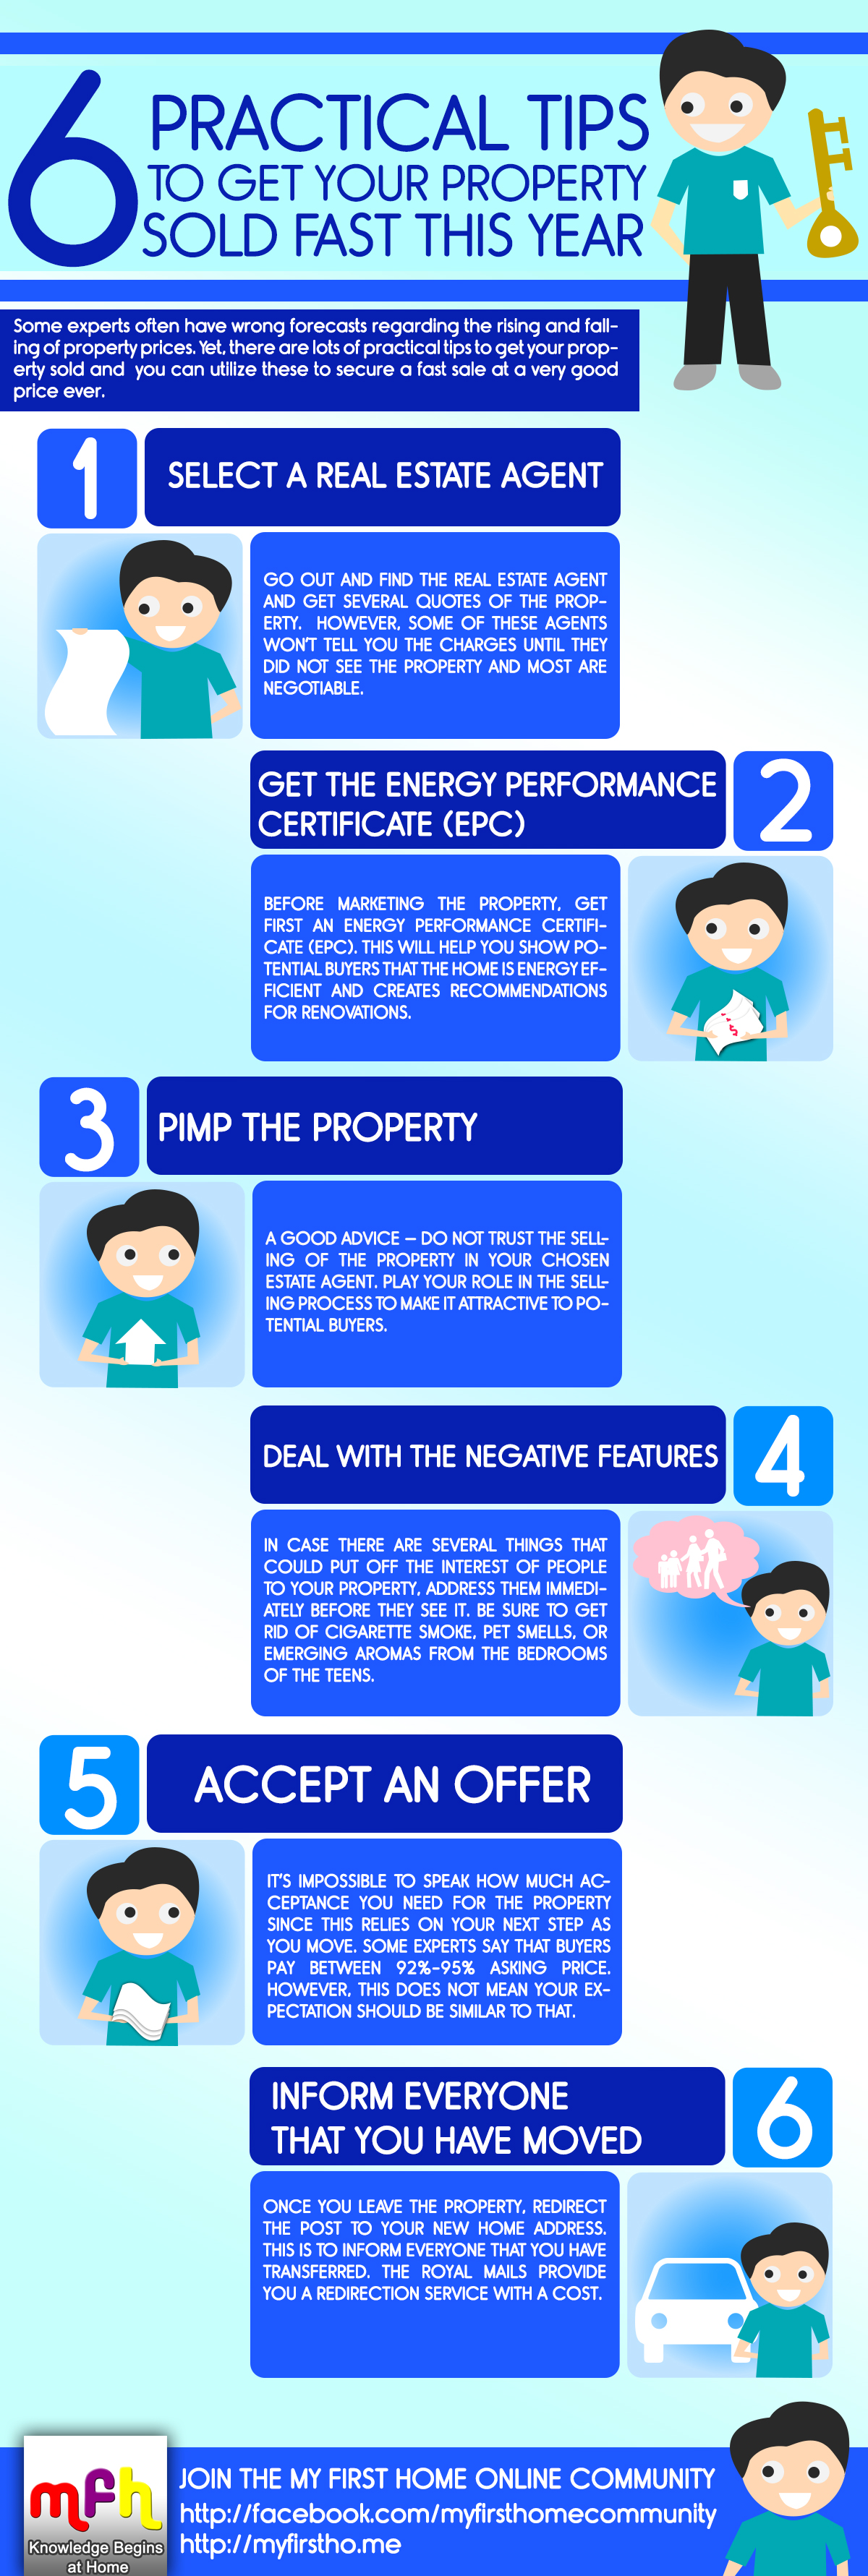 6 Practical Tips To Get Your Property Sold Fast This Year Like Share Tag